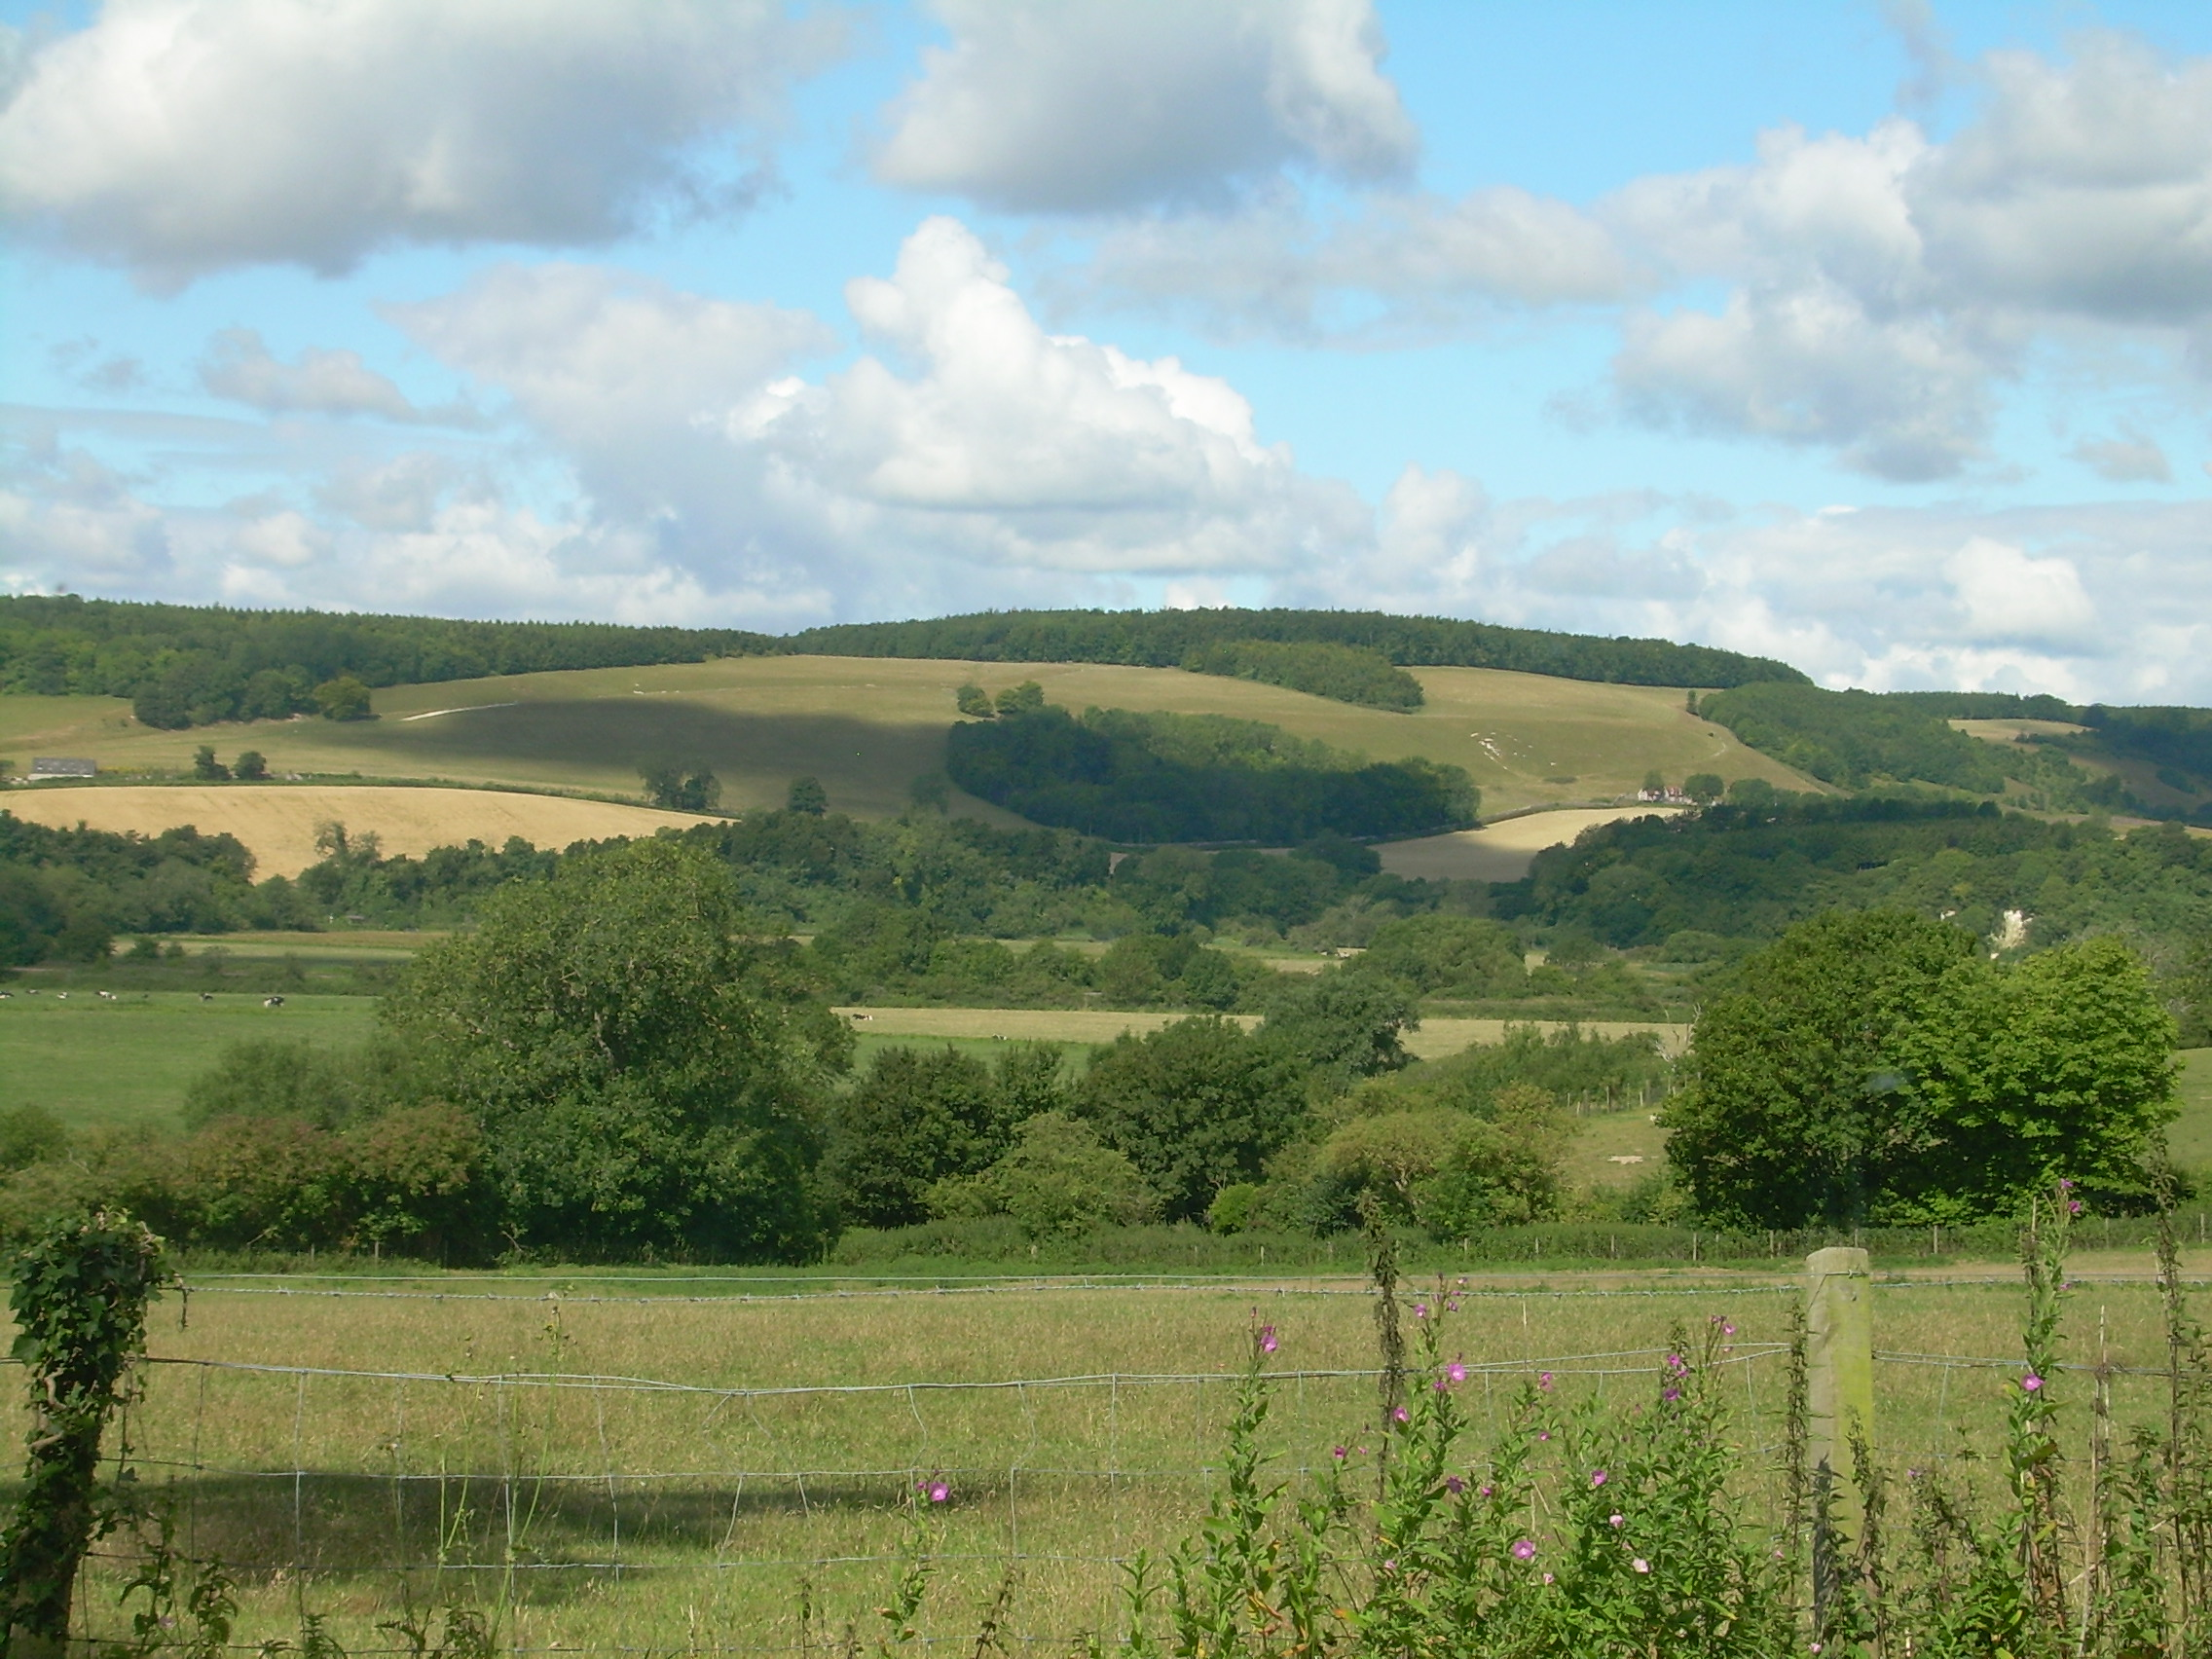 The Arun Valley in the South Downs